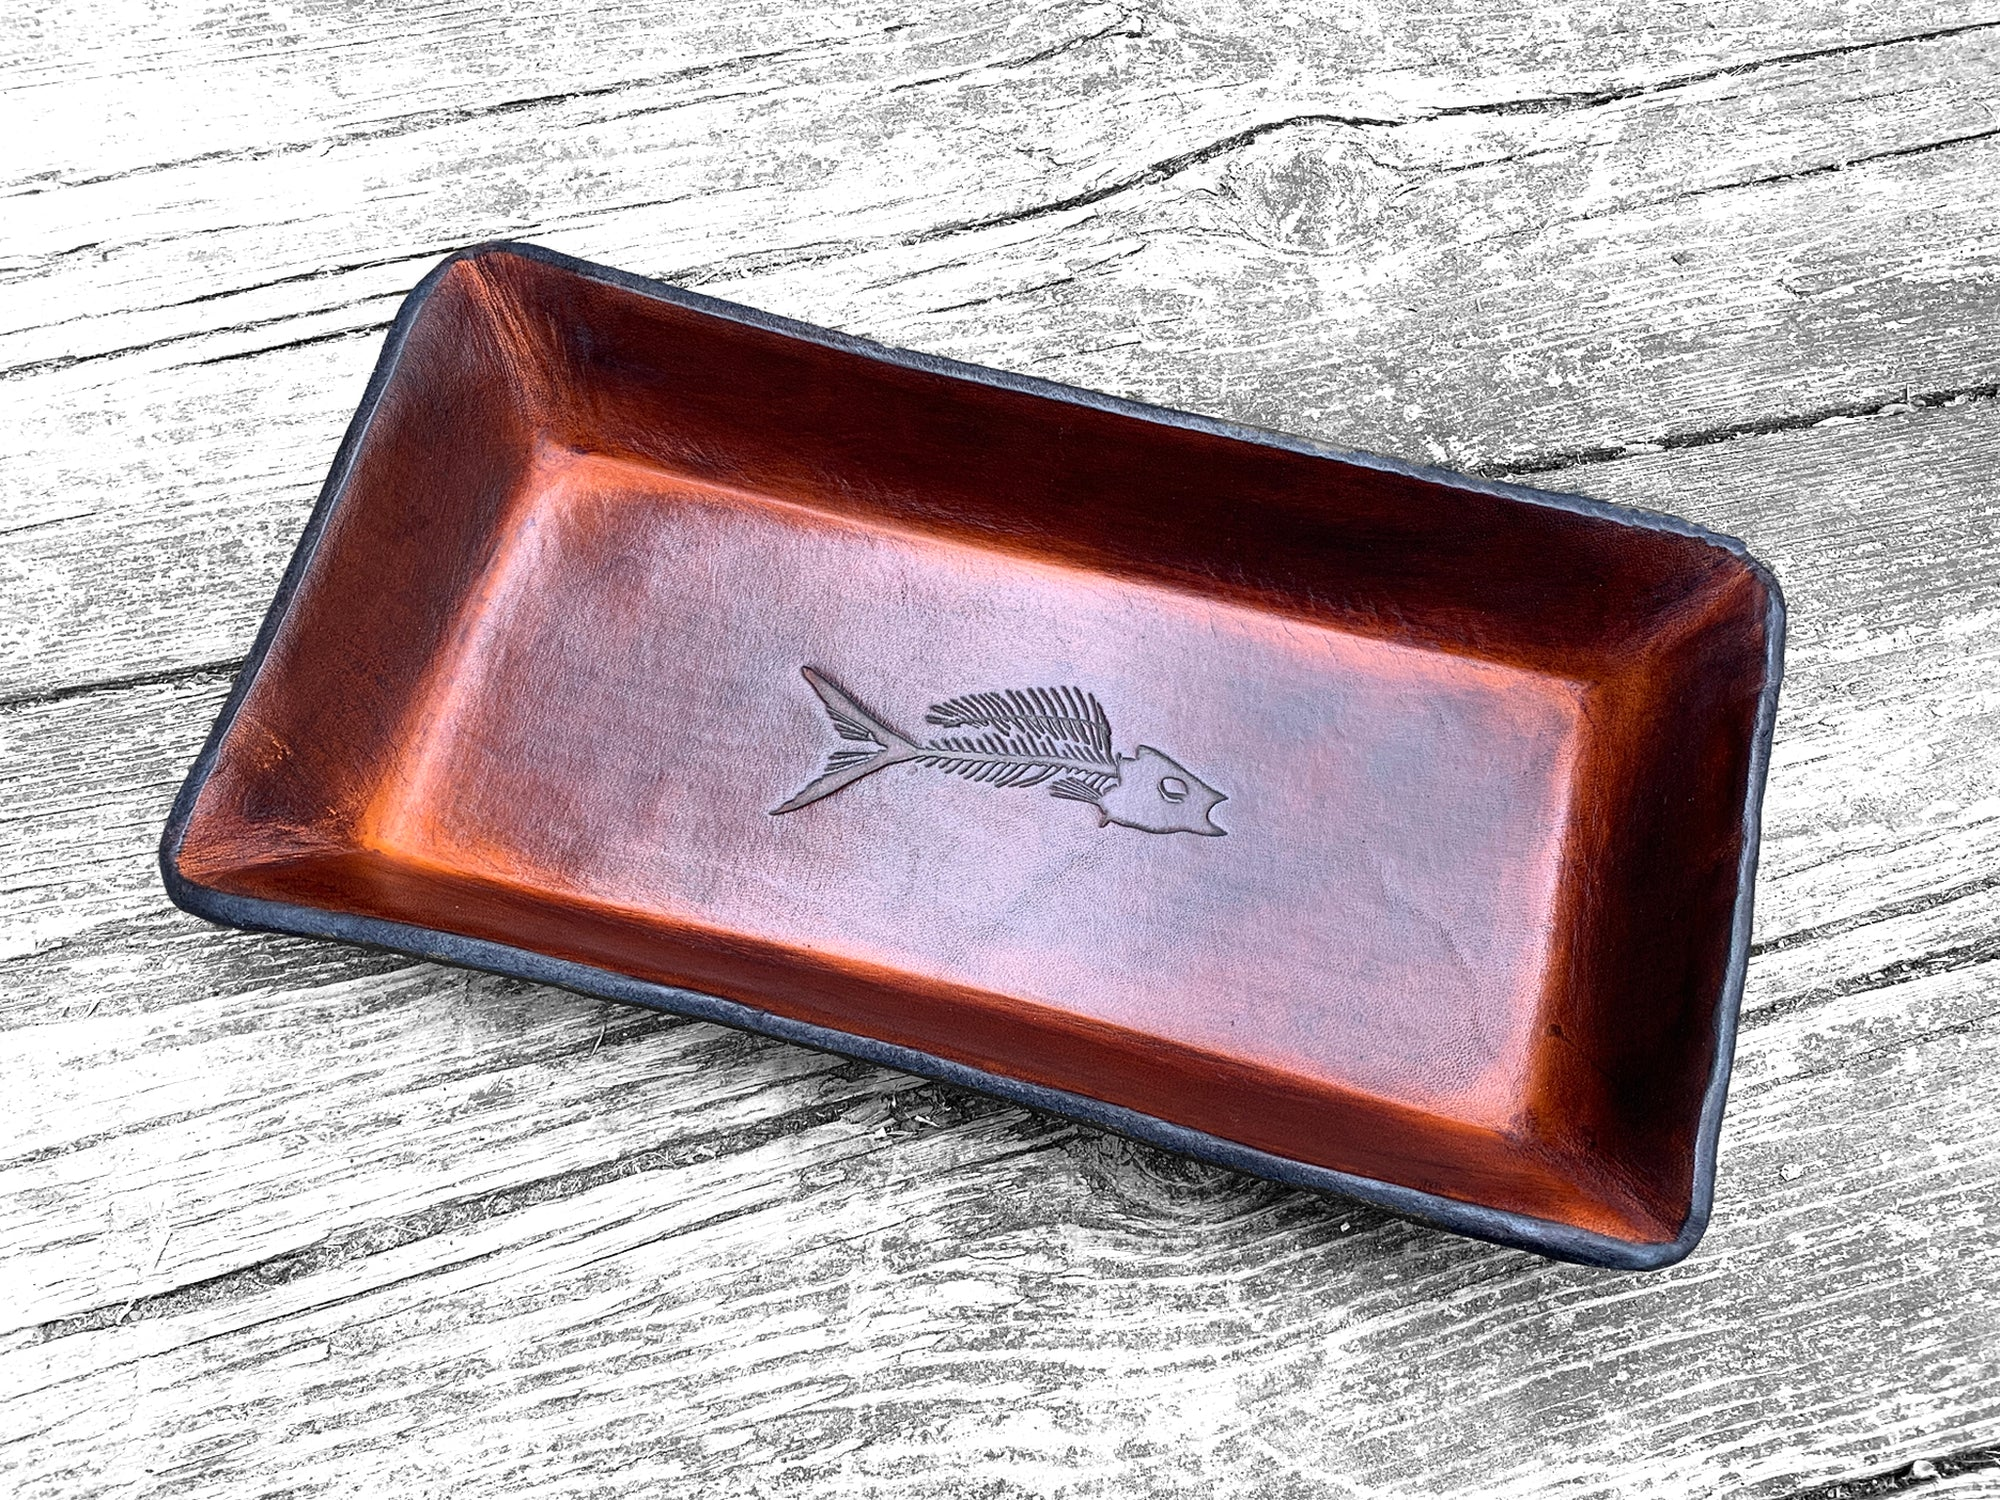 Our Leather Valet with Fossil Fish Motif Makes a Rustic Statement